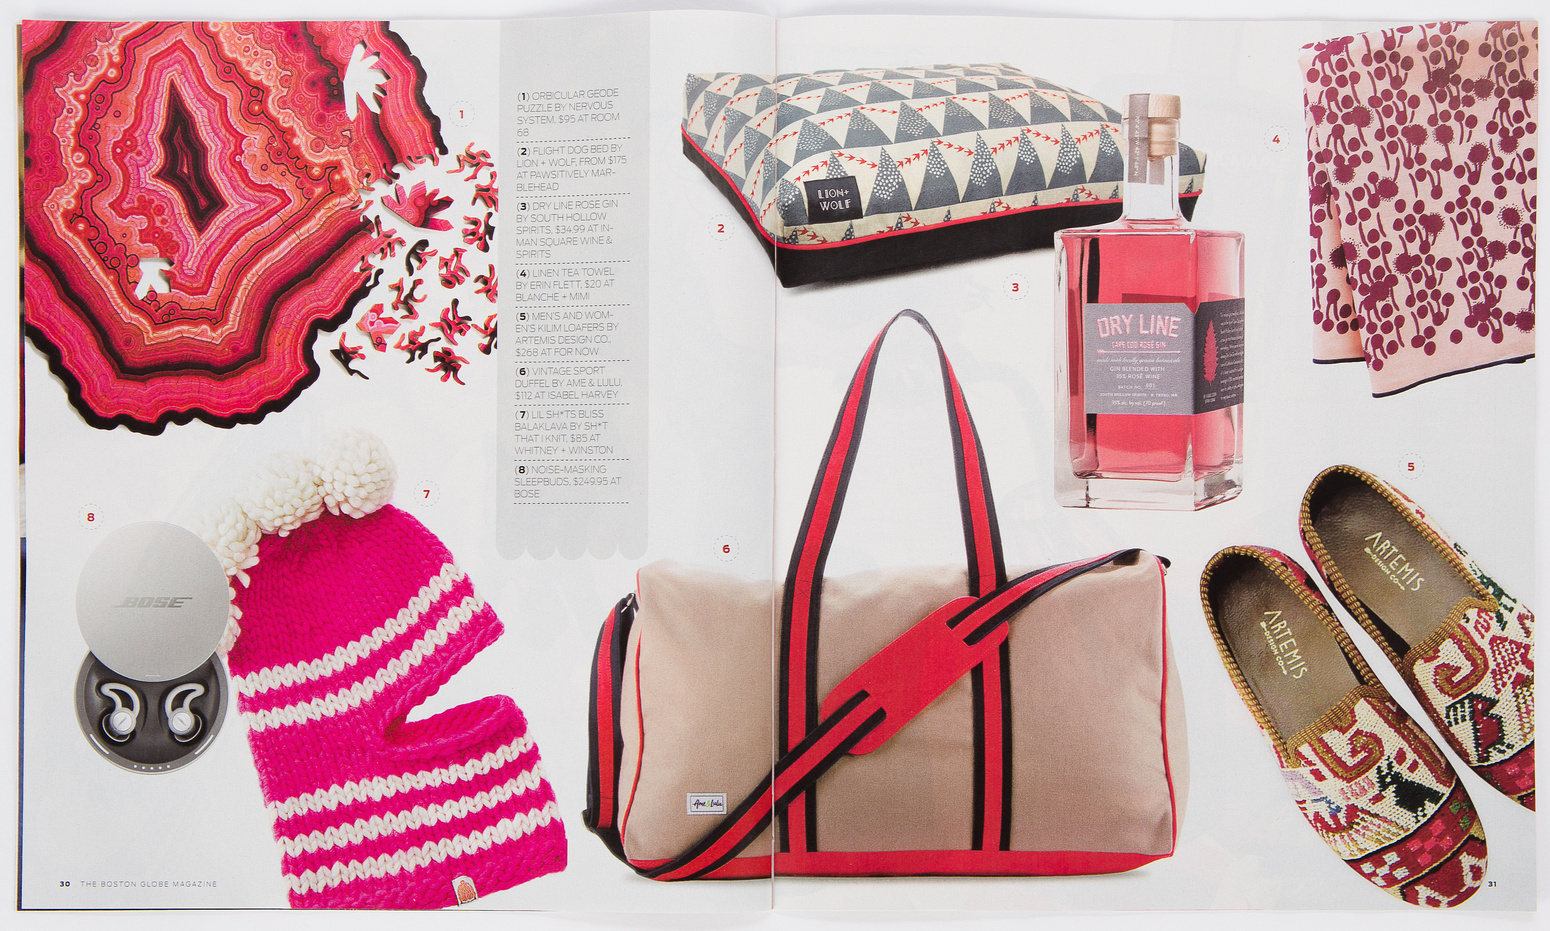 Ame and Lulu Bag shot by Vail Fucci Featured in Boston Globe Magazine